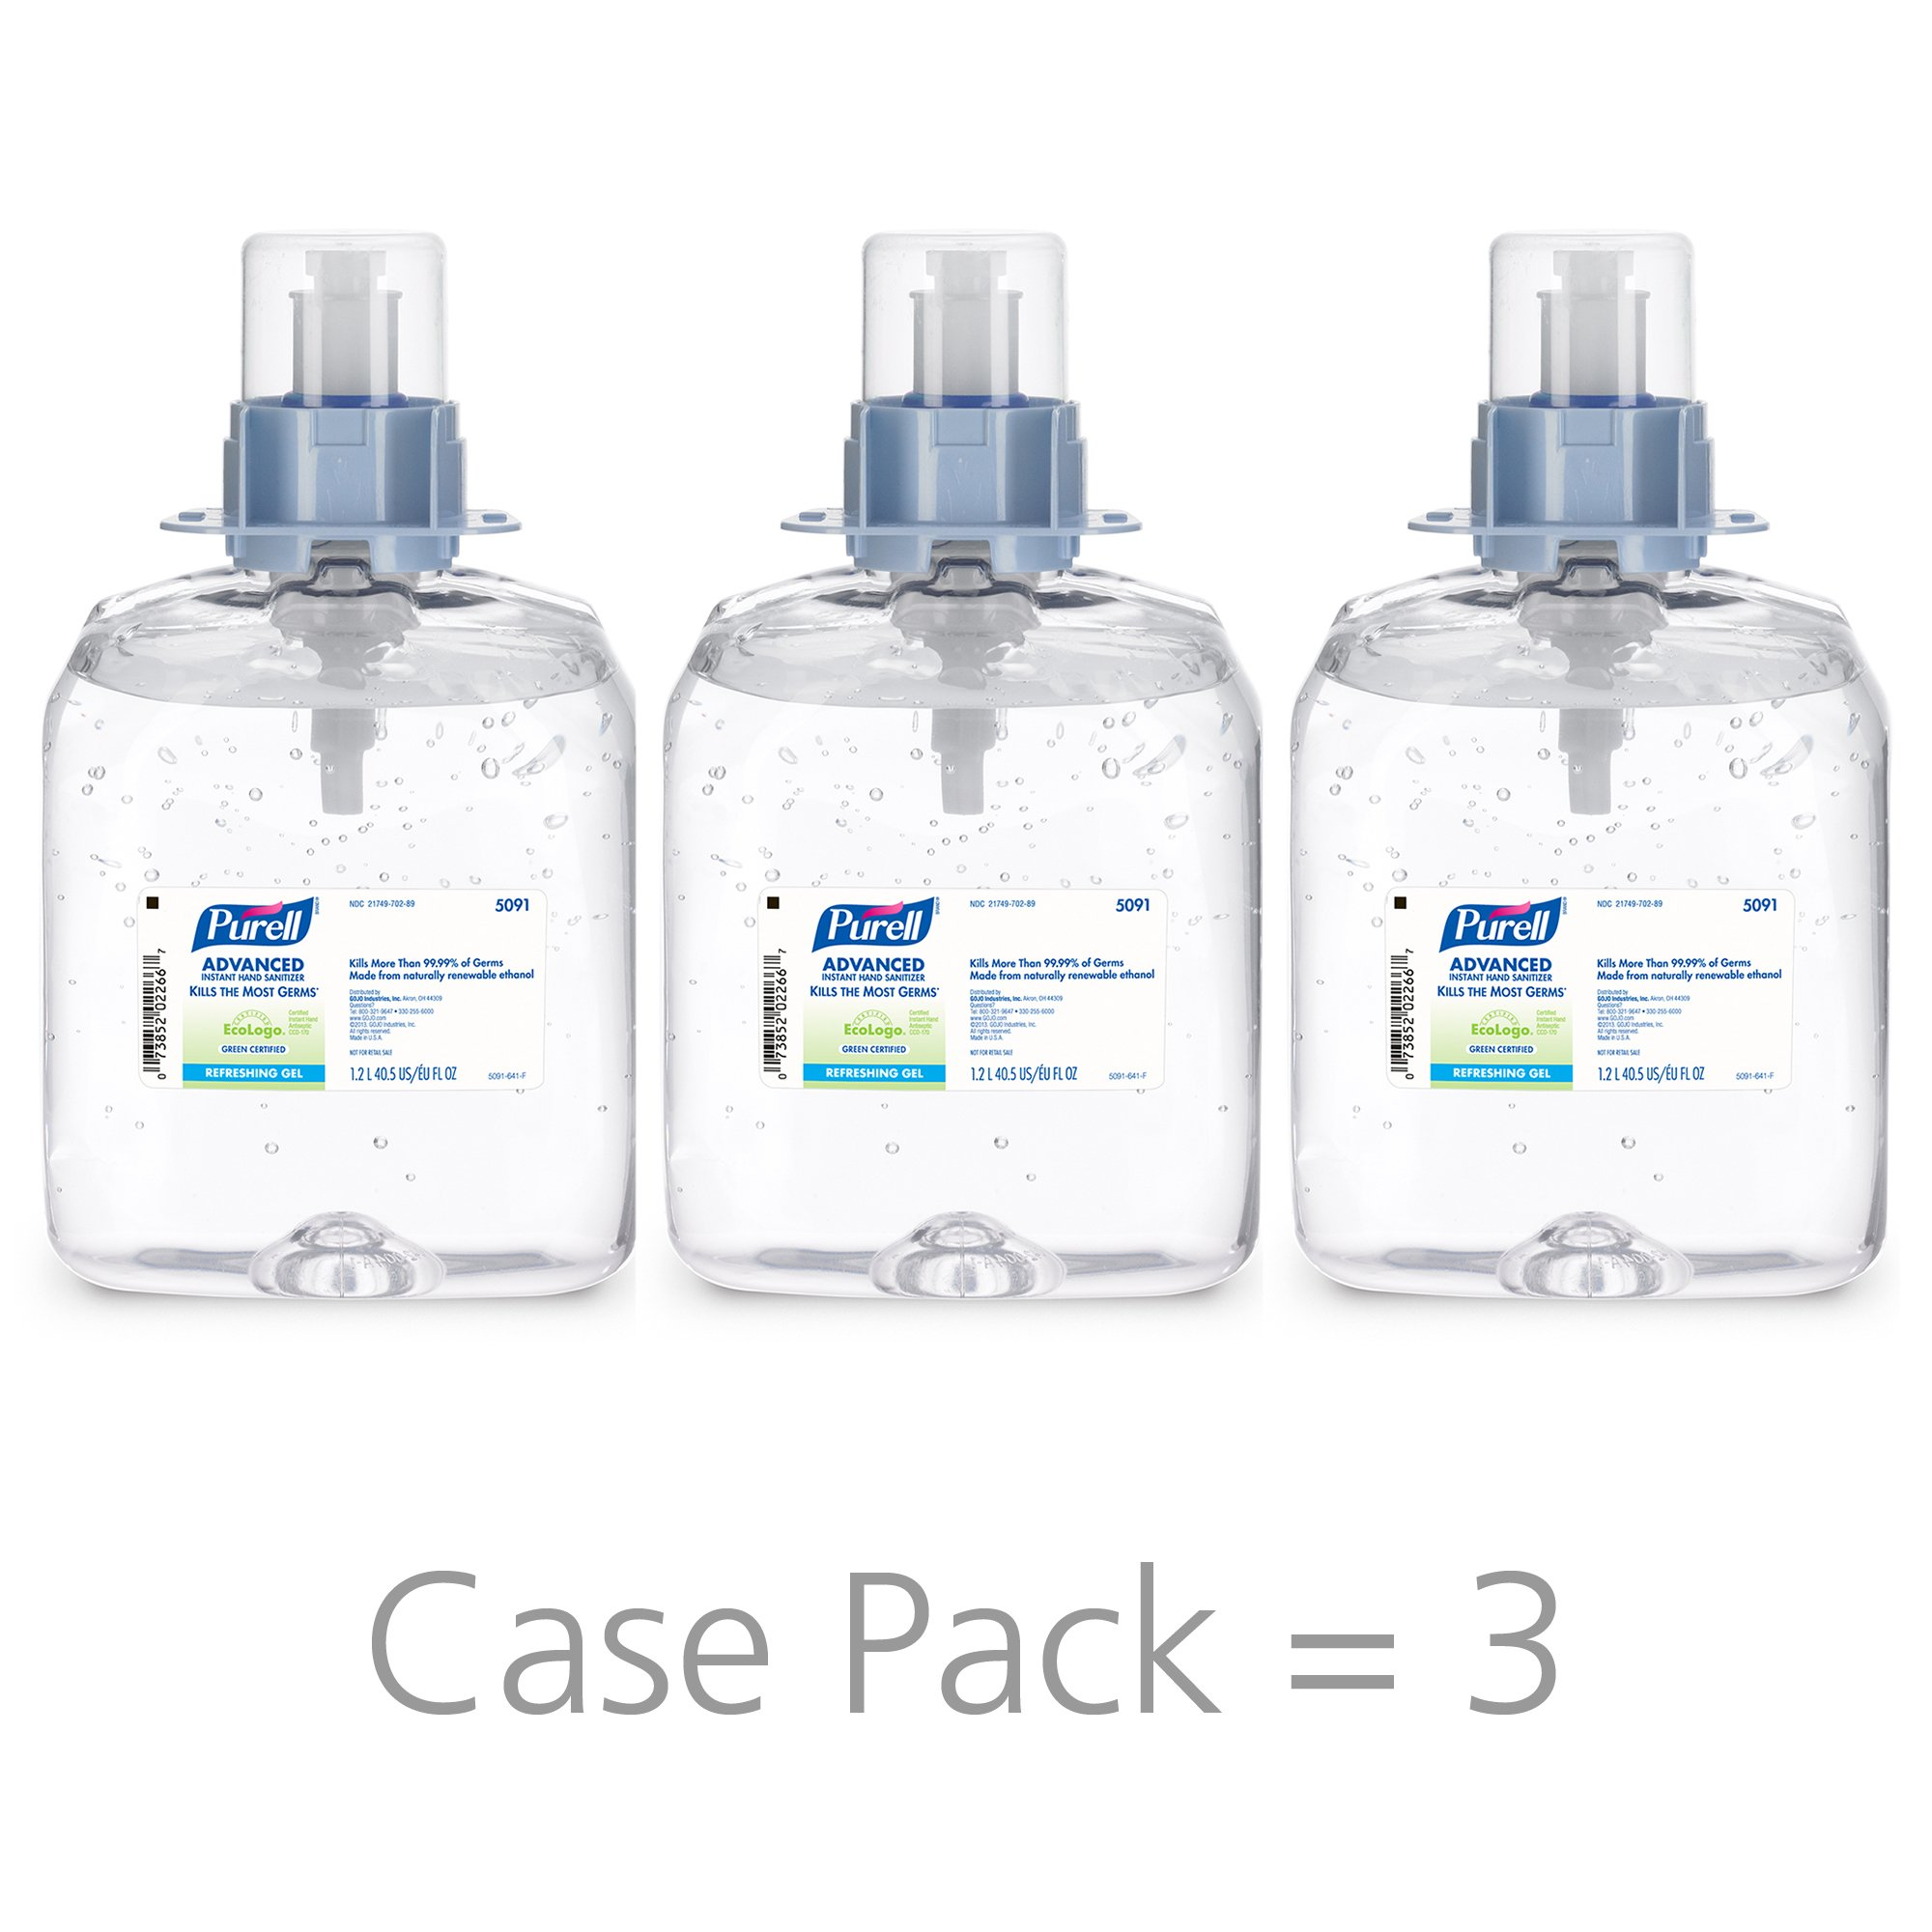 PURELL Advanced Hand Sanitizer Green Certified Gel, Fragrance Free, 1200 mL Hand Sanitizer Refills for PURELL FMX-12 Push-Style Dispenser (Pack of 3) - 5091-03 by Purell